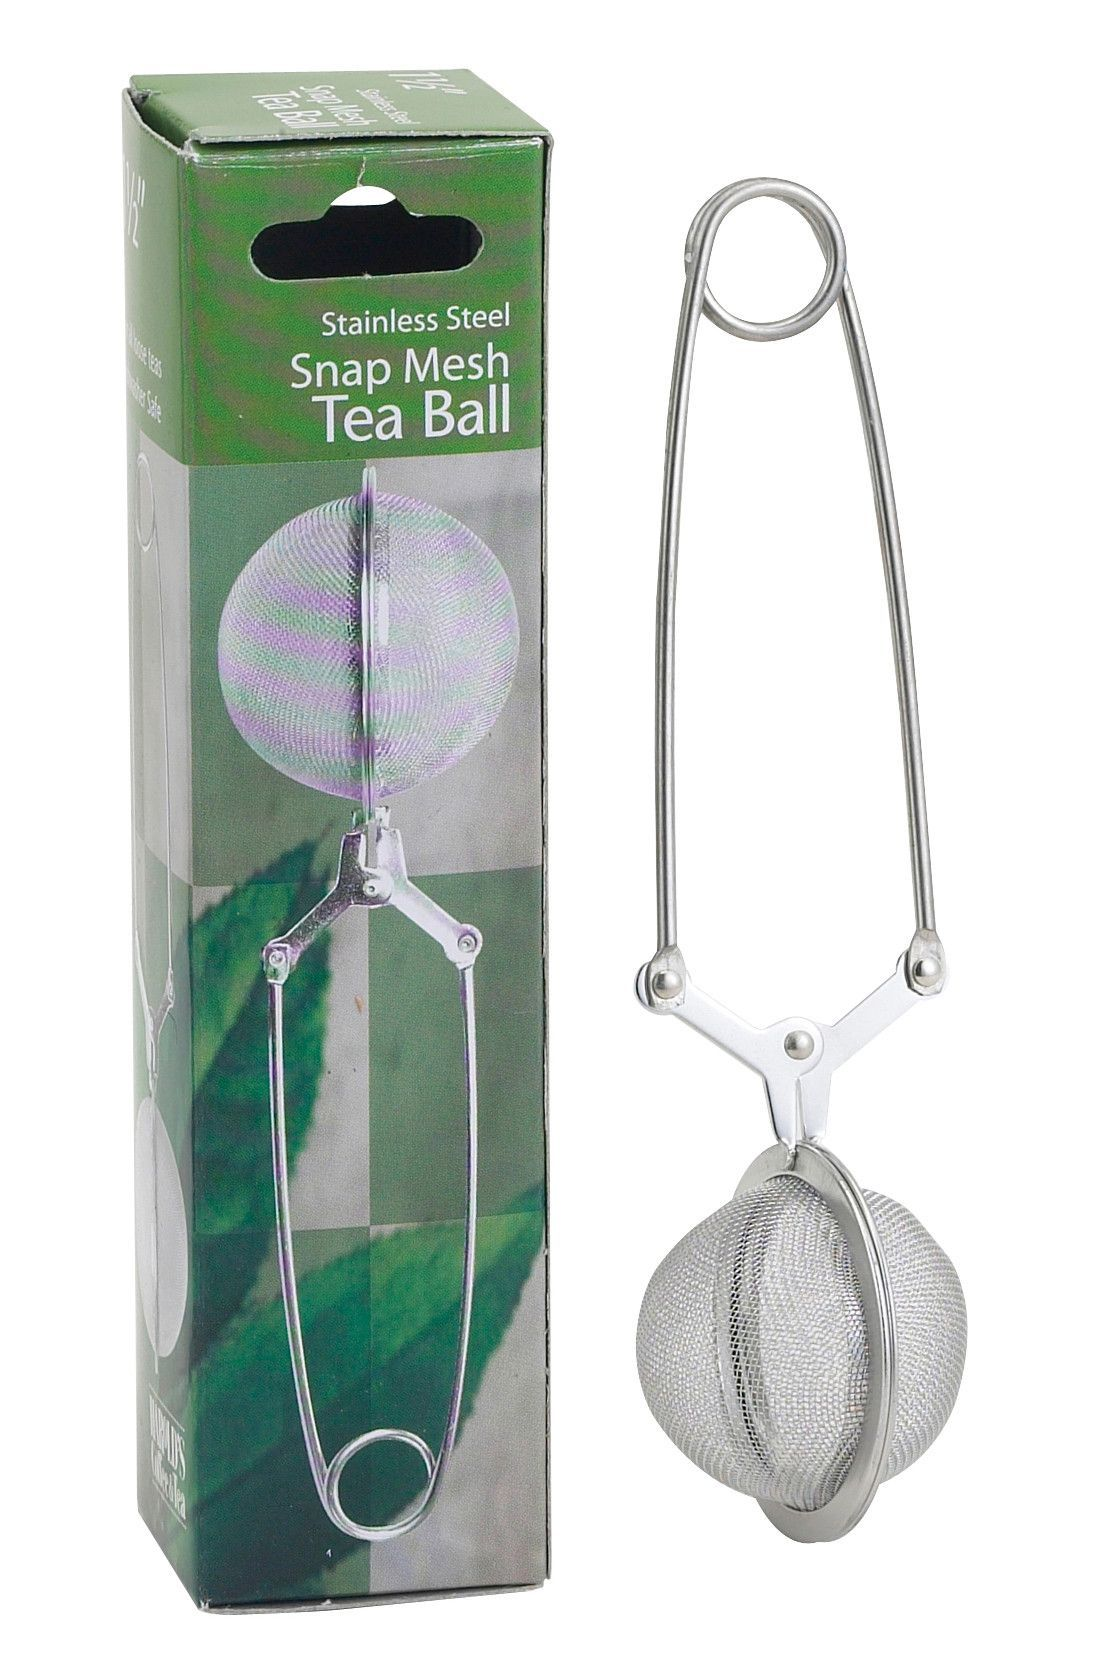 Tea Ball, Snap Mesh Infuser Tea infuser, Tea strainer, Tea